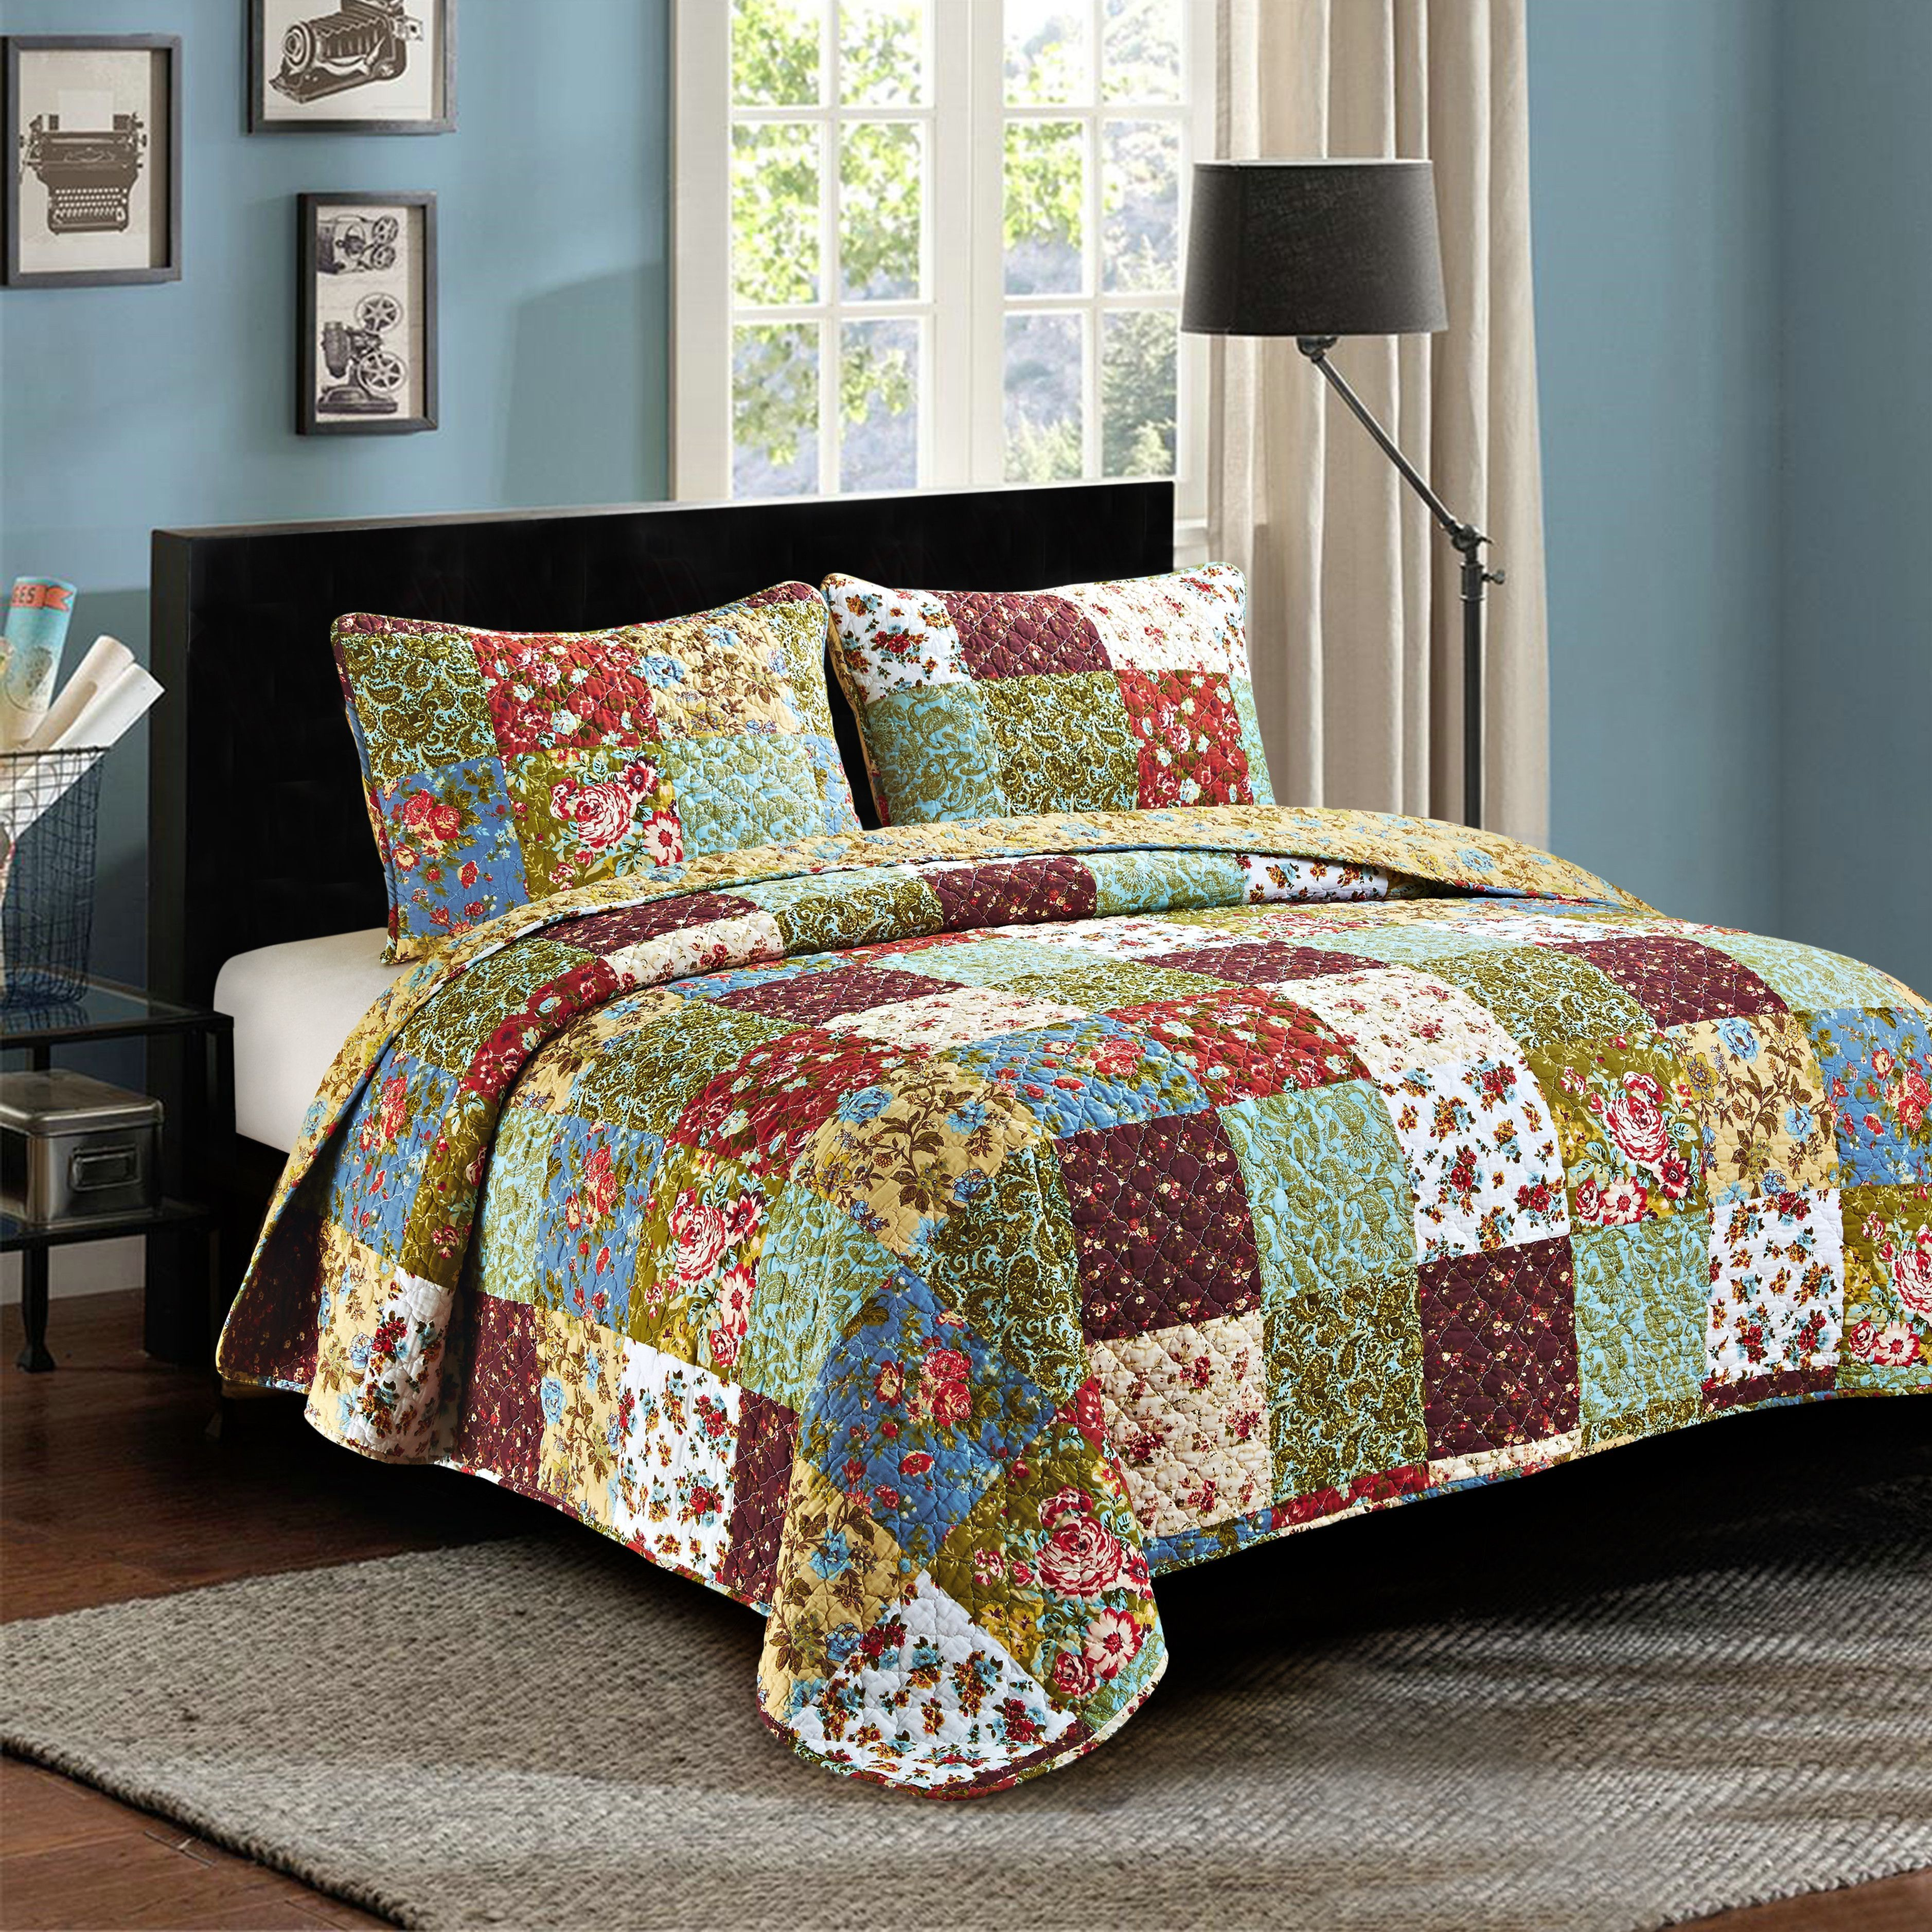 costco tommy for bedroom bed bedding comforter modern sets quilts bahama sleigh quilt king